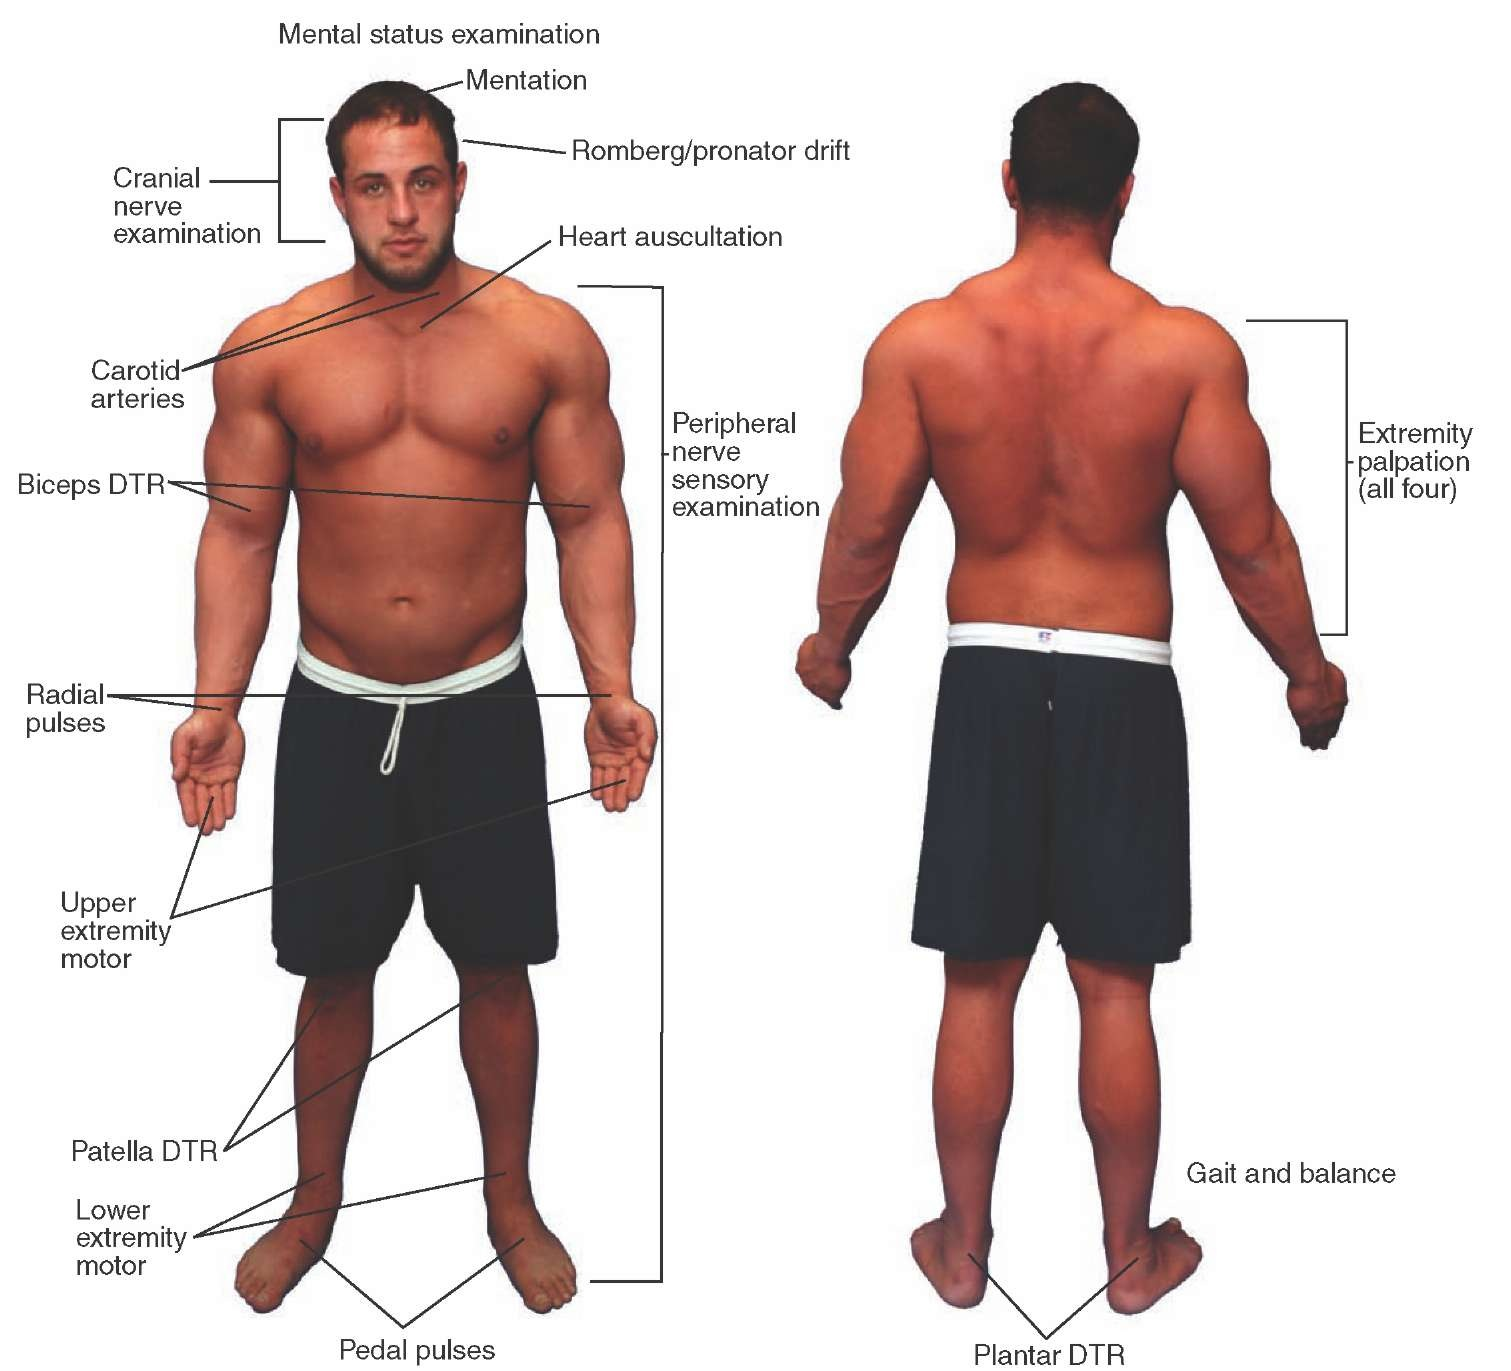 Male Physical Examination